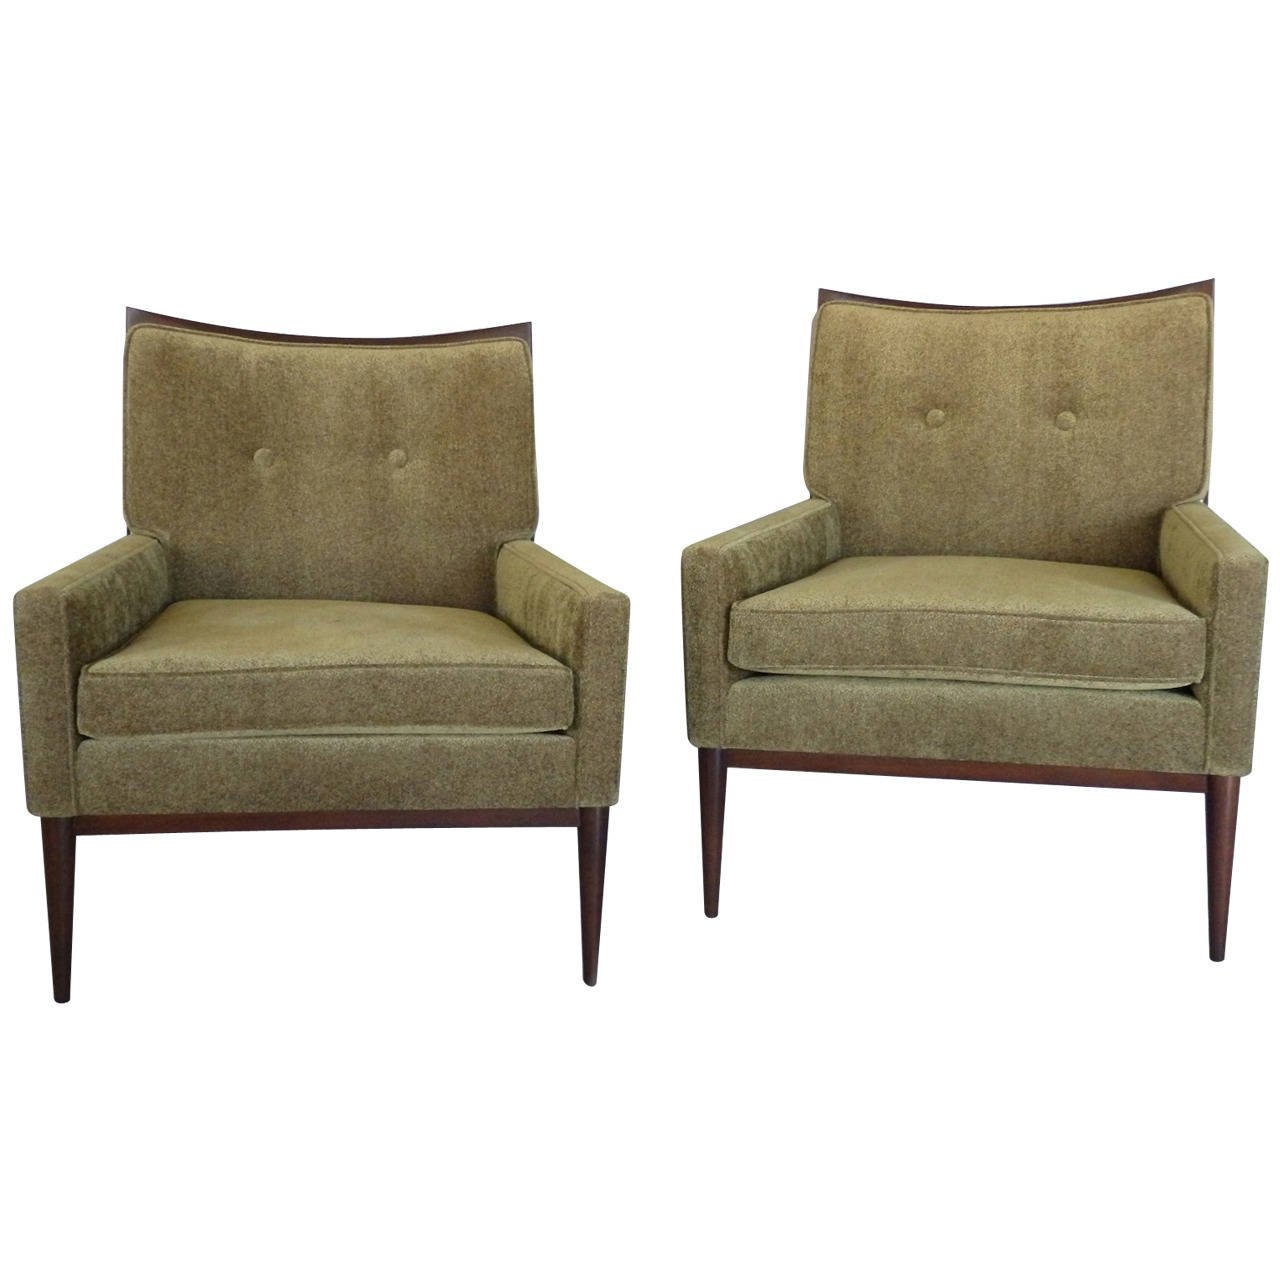 Paul Mccobb Chairs Pair Of Modernist Lounge Chairs By Paul Mccobb